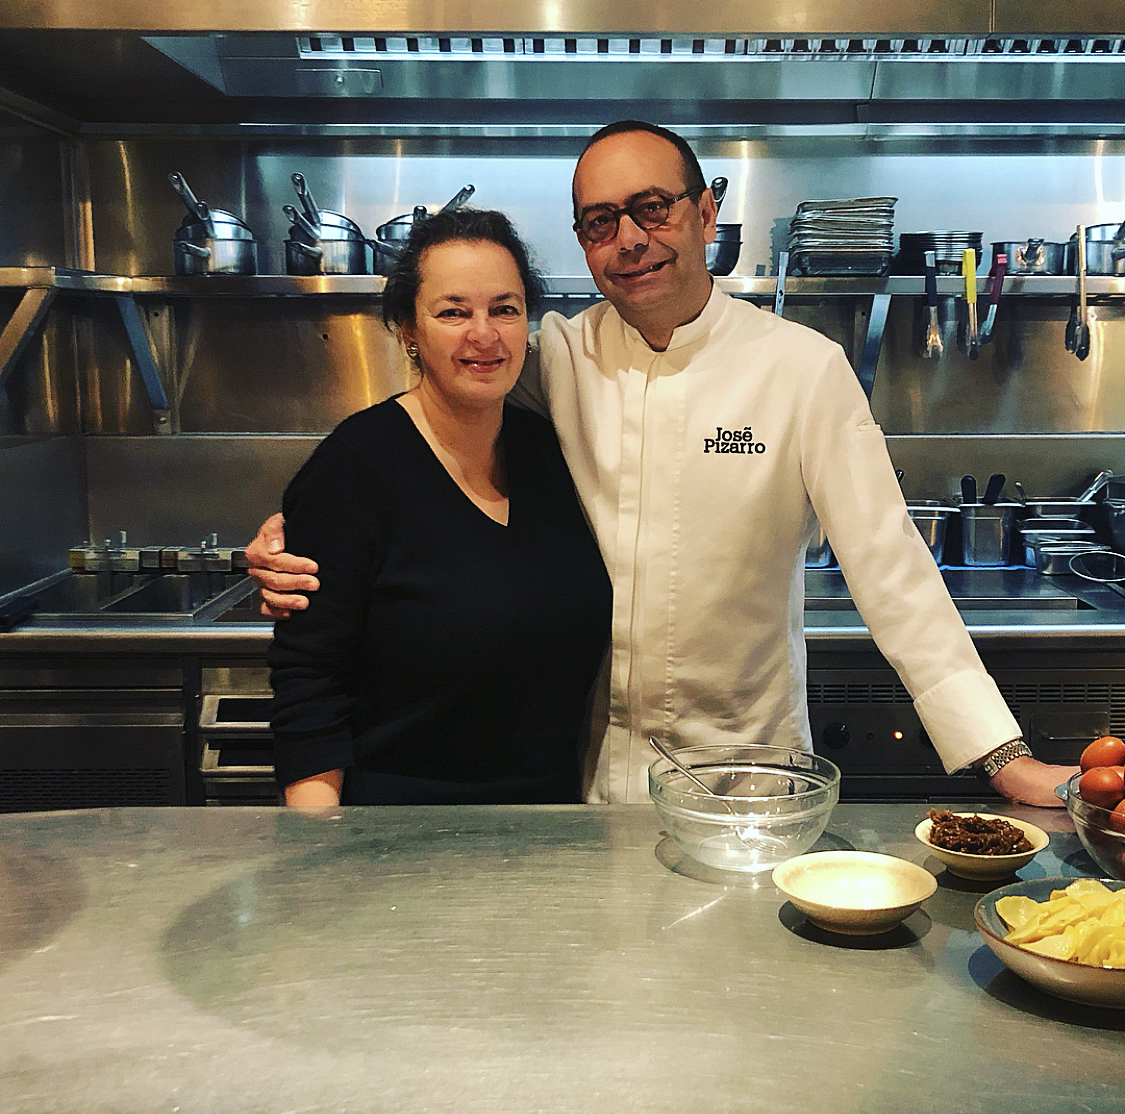 Famous Chef José Pizarro with faithtable Founder, Giorgina Djanogly